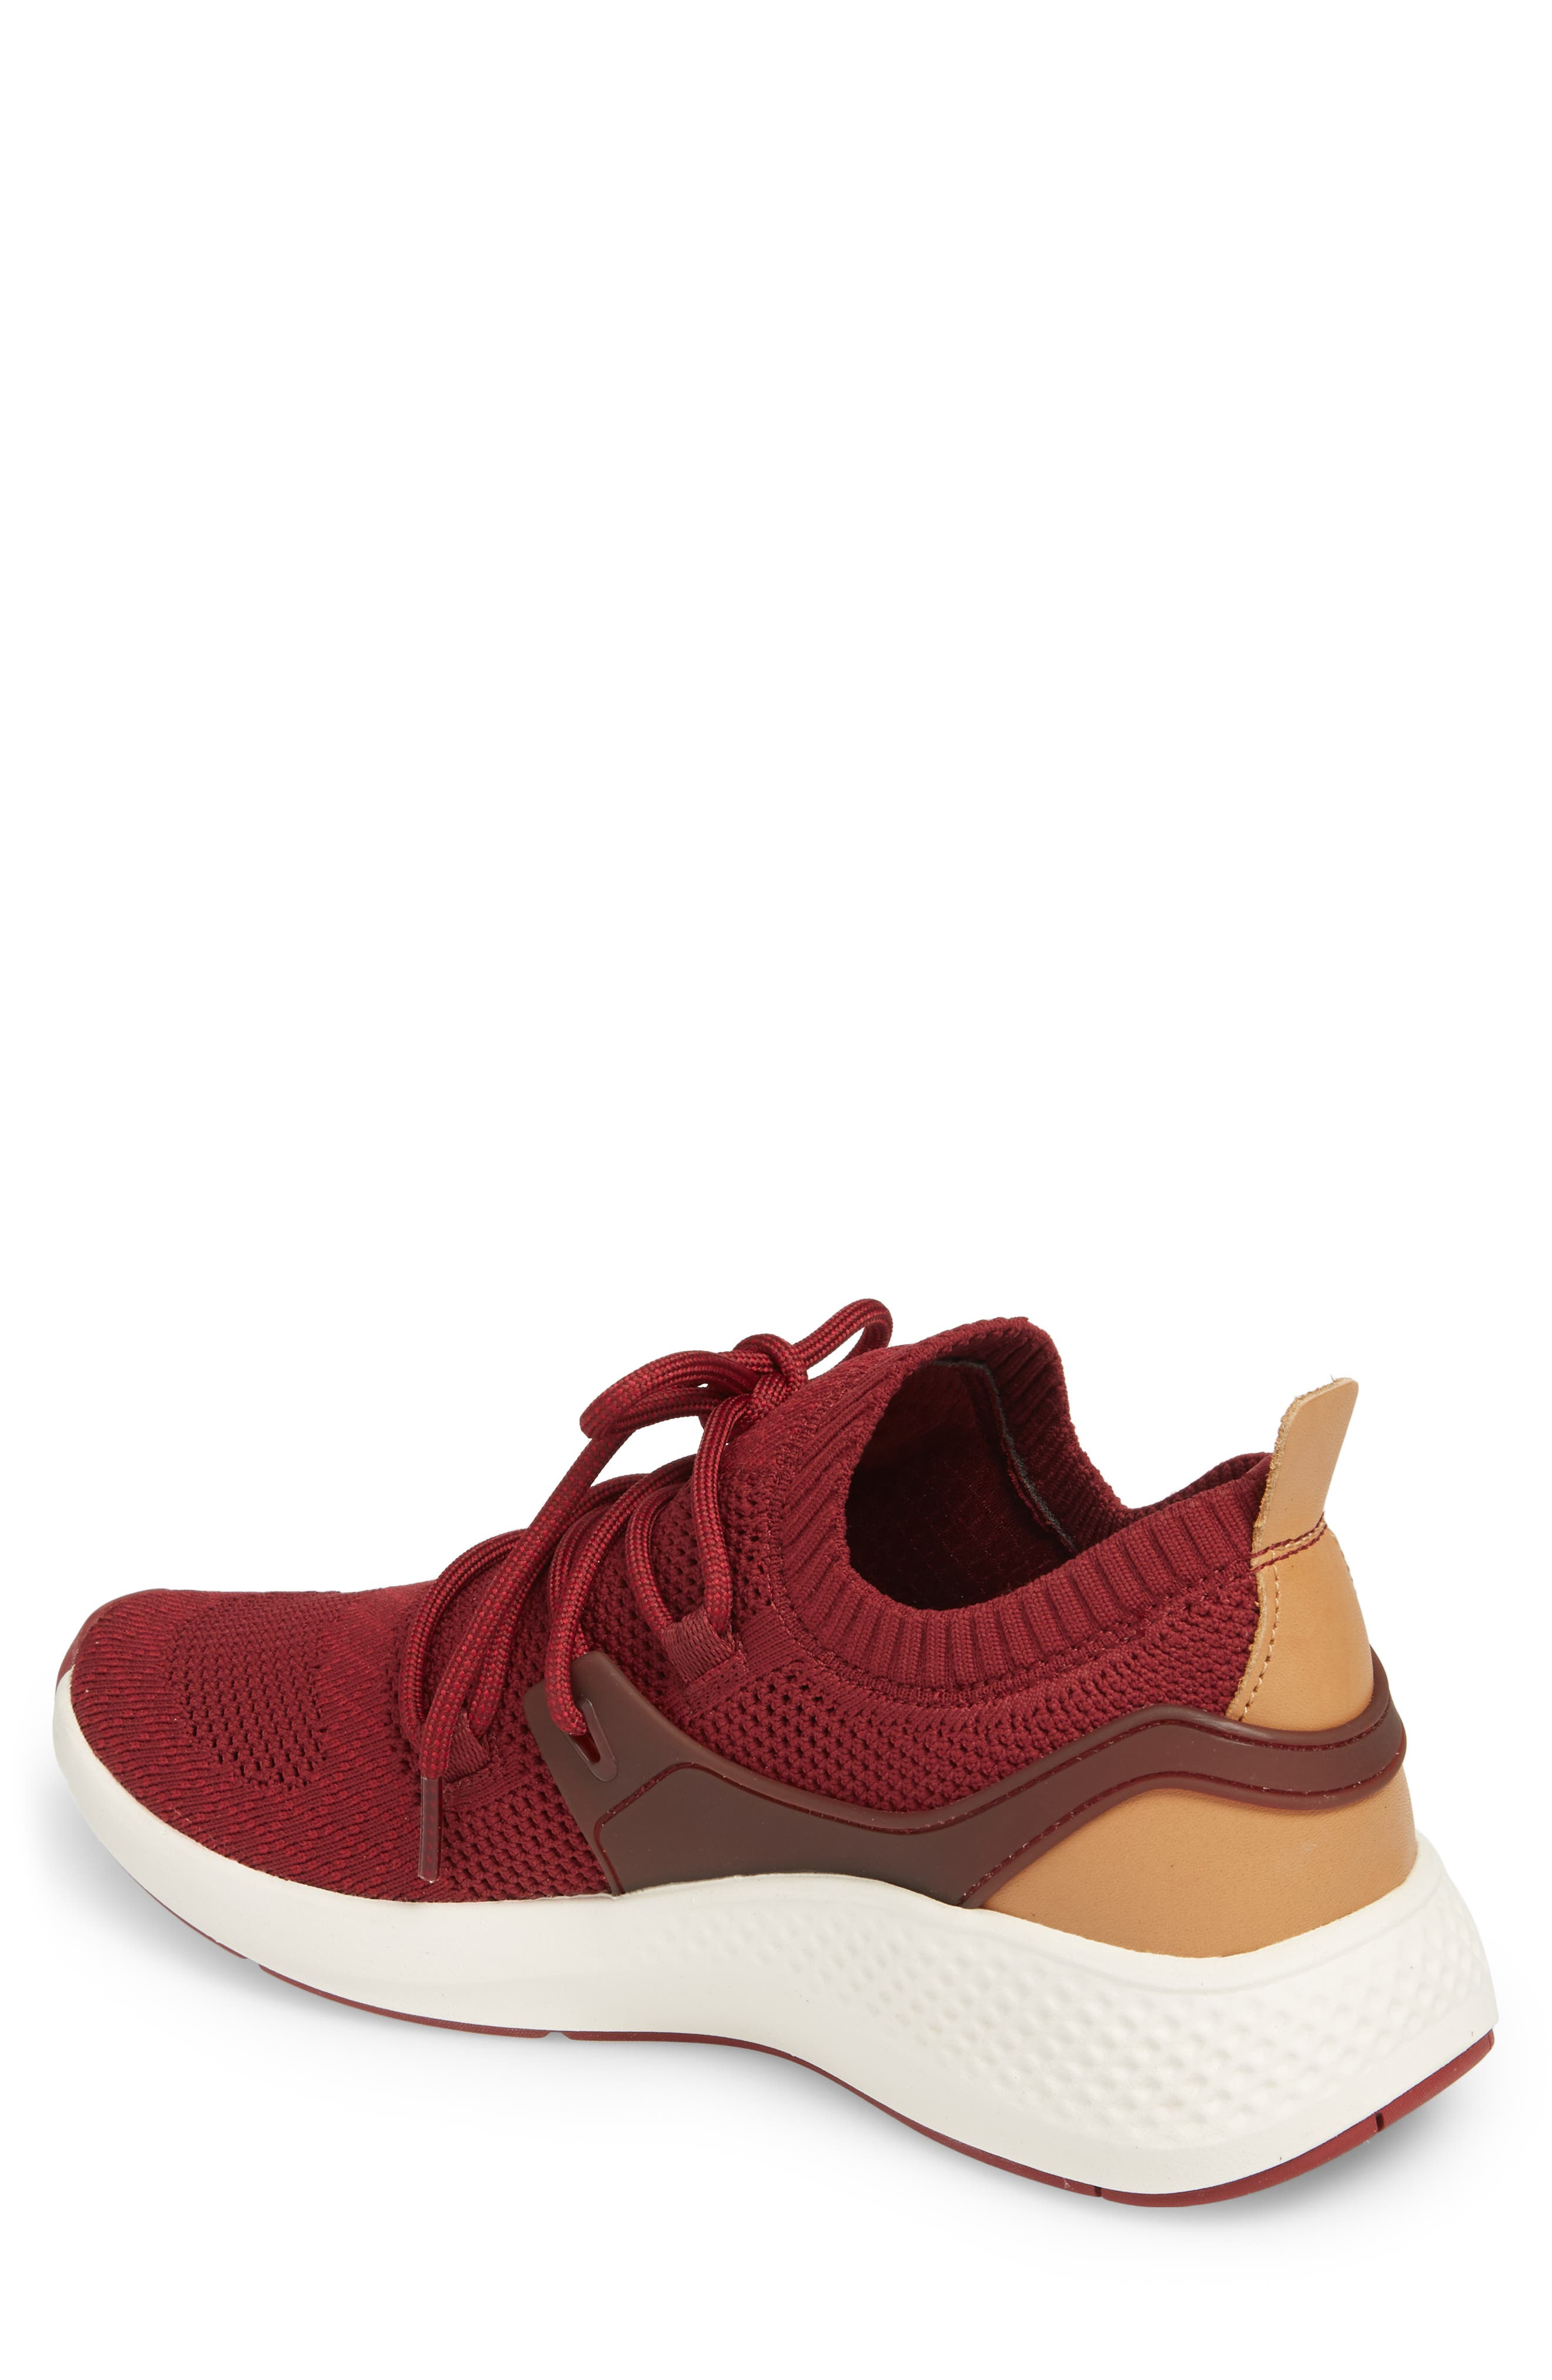 FlyRoam Sneaker,                             Alternate thumbnail 2, color,                             POMEGRANATE LEATHER